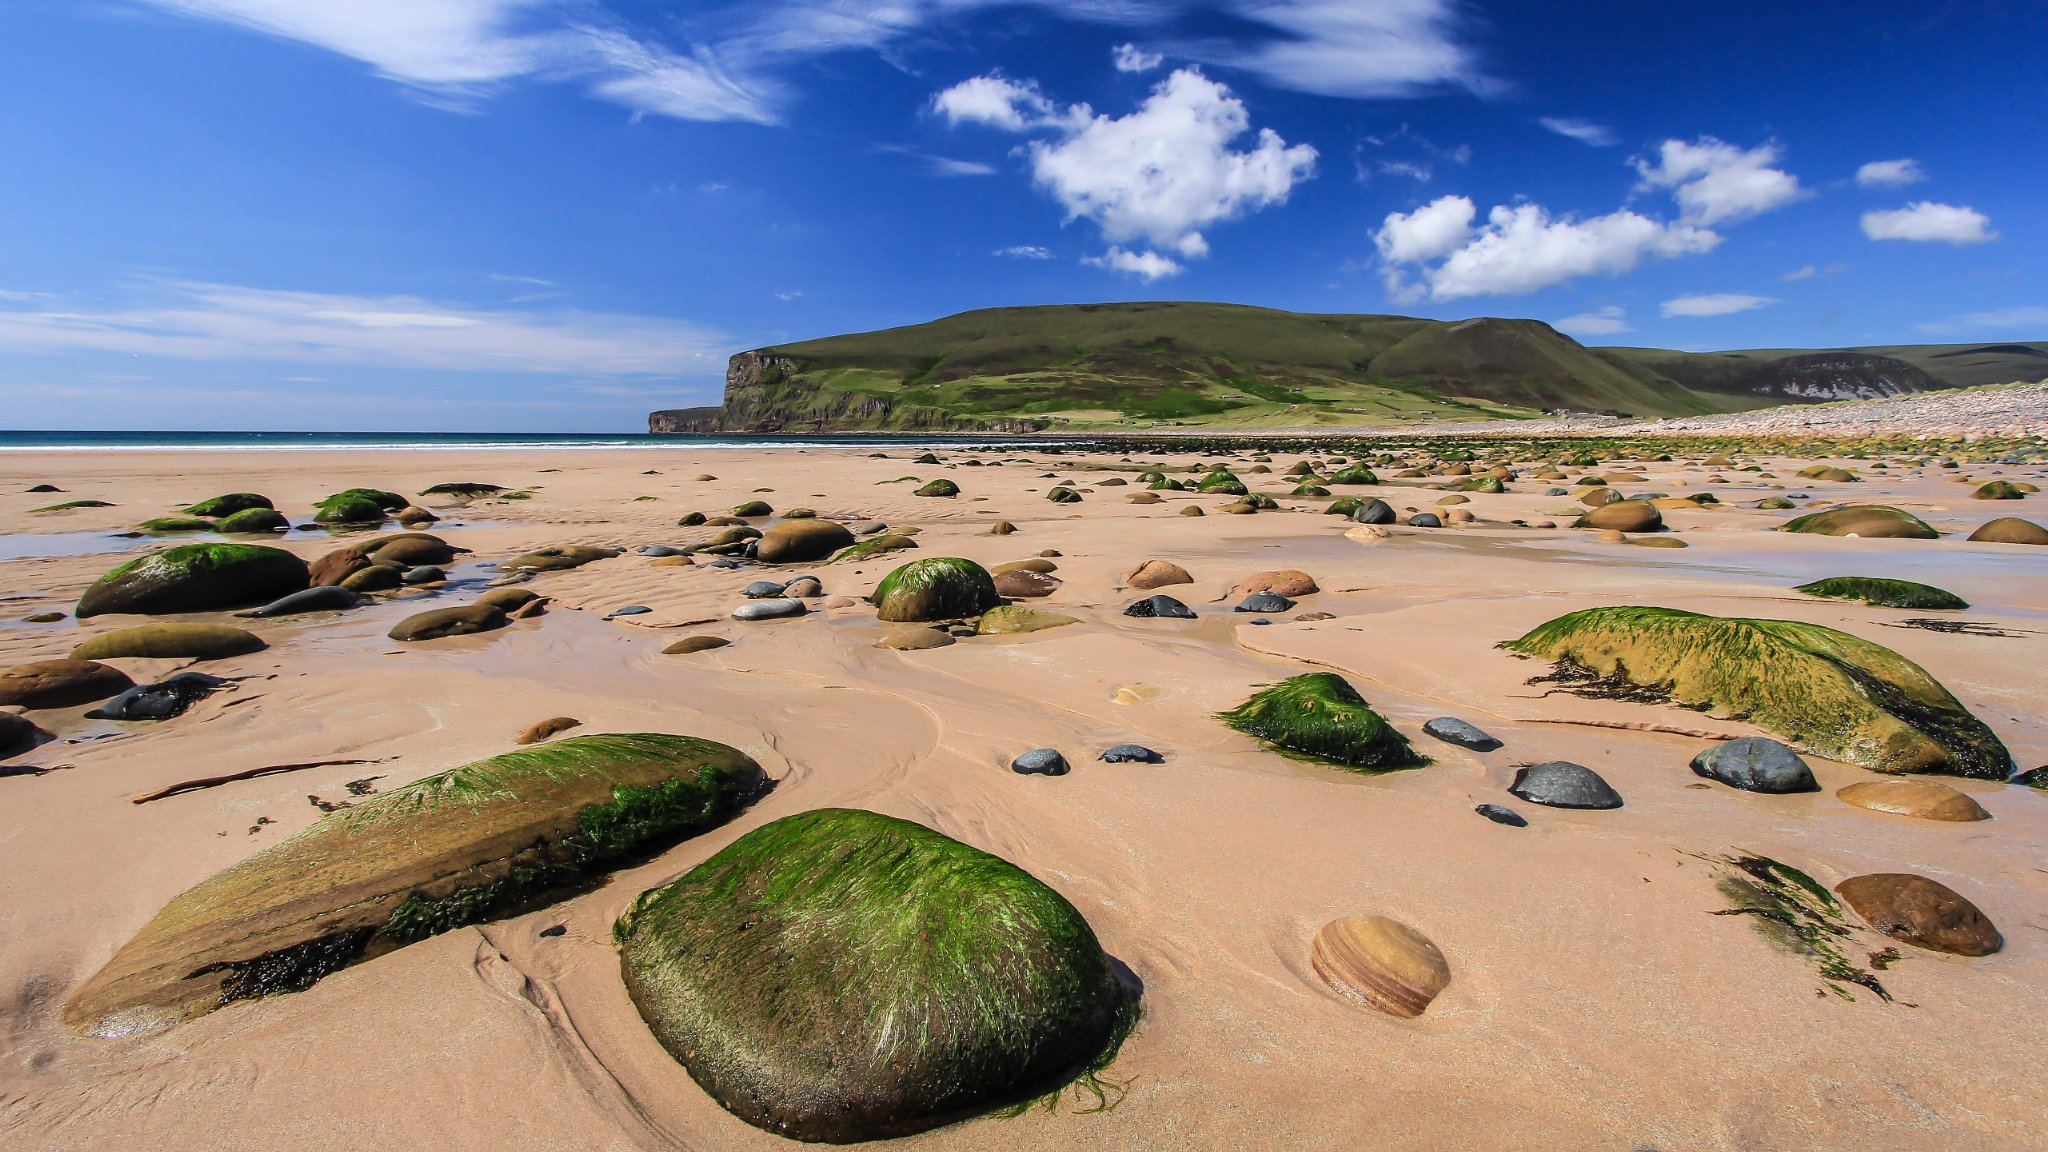 The beach at Rackwick, Hoy - image by Maciek Orlicki